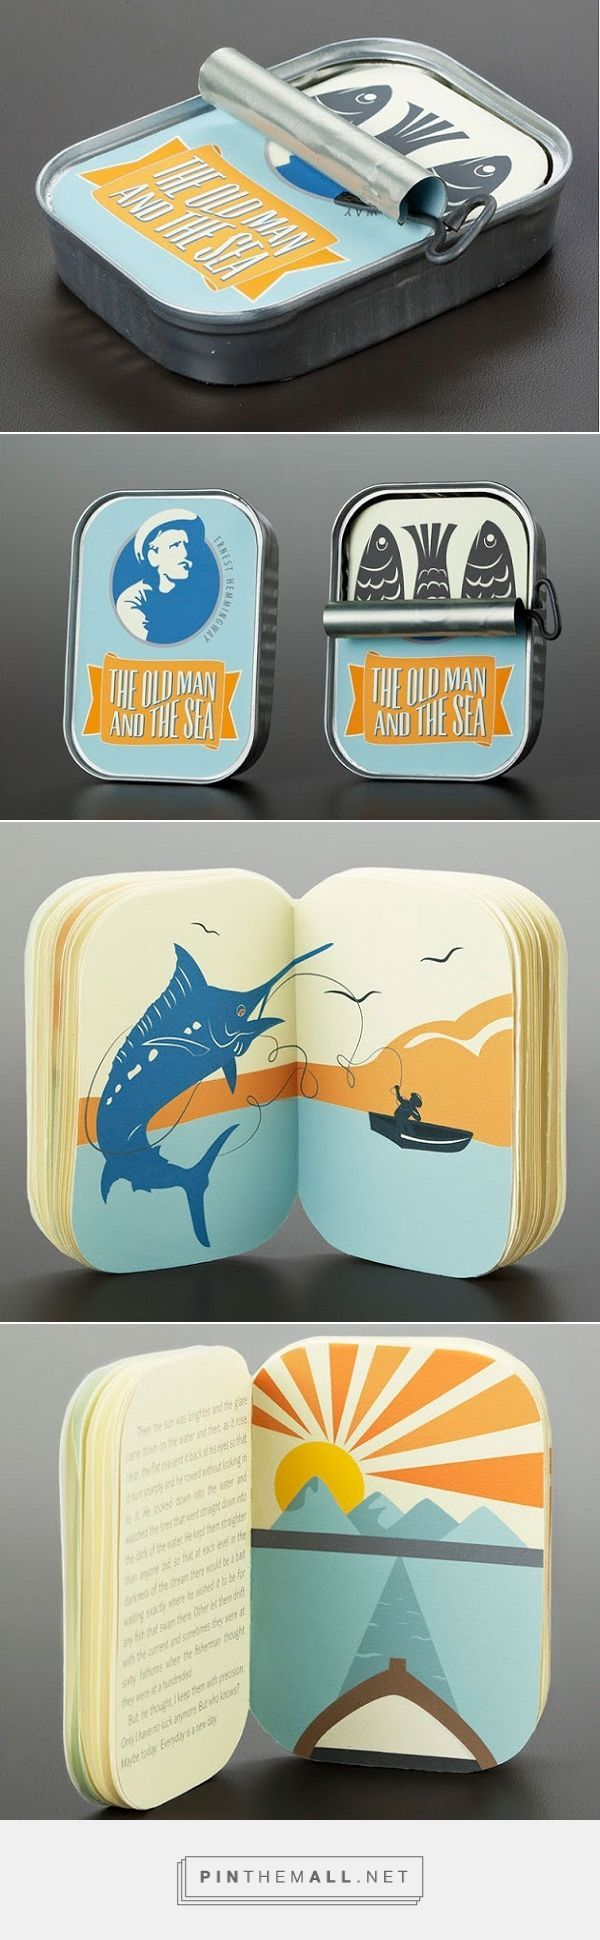 Brilliant Tin Can Packaging For Hemingway's Classic 'The Old Man And The Sea'